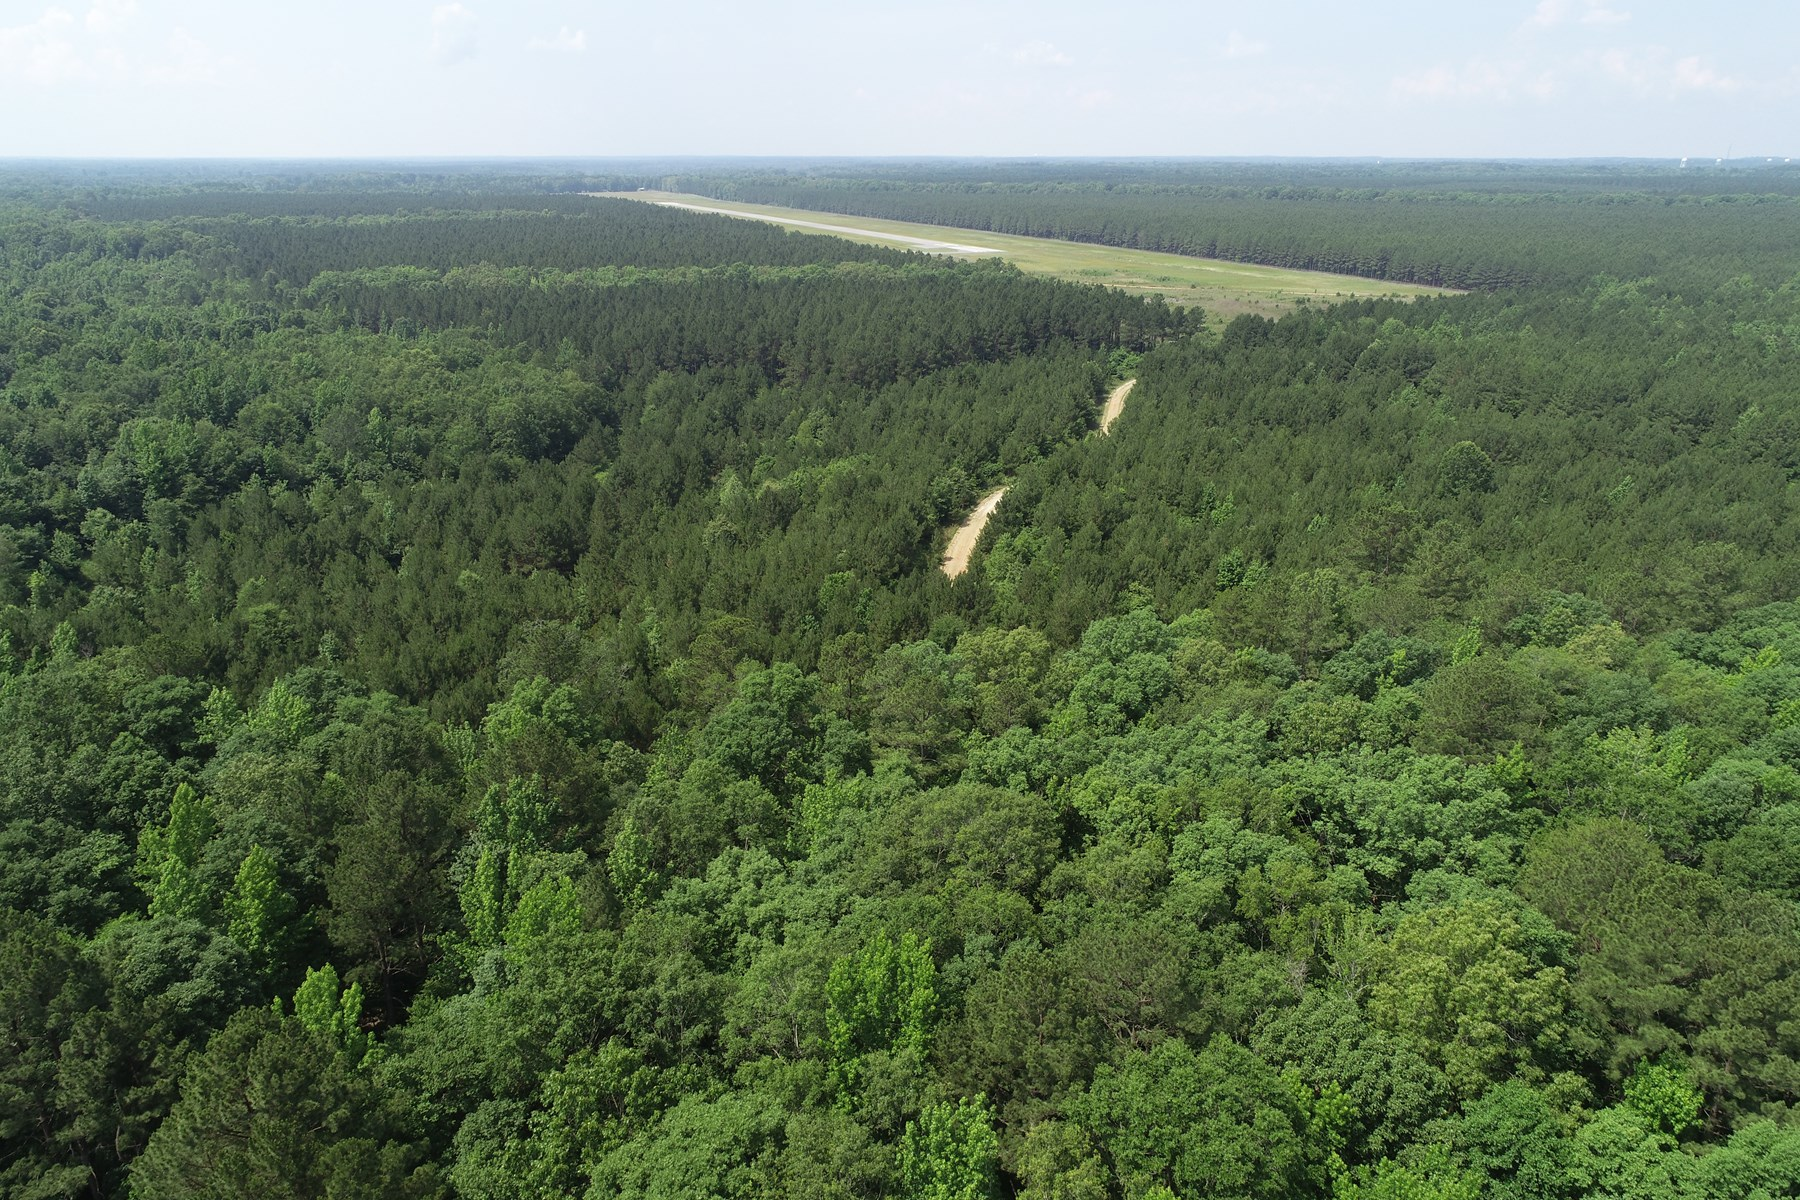 Airport Tract +/- 3,454 ac Timber Land for Sale in Arkansas